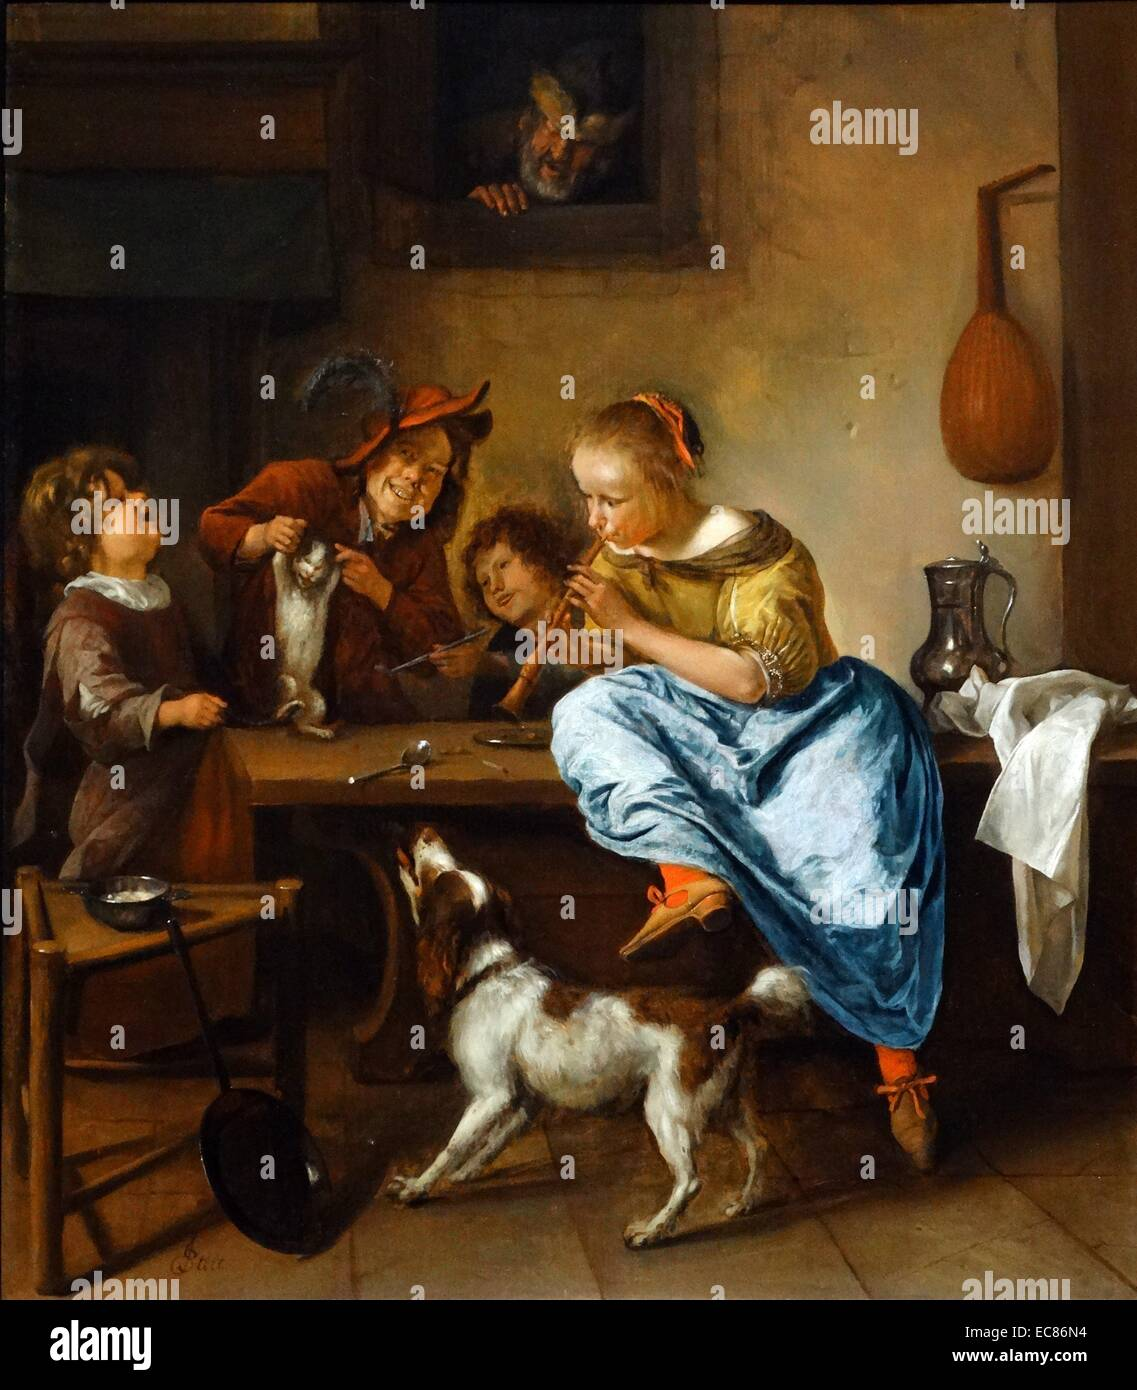 Painting titled 'The Dancing Lesson' - Stock Image